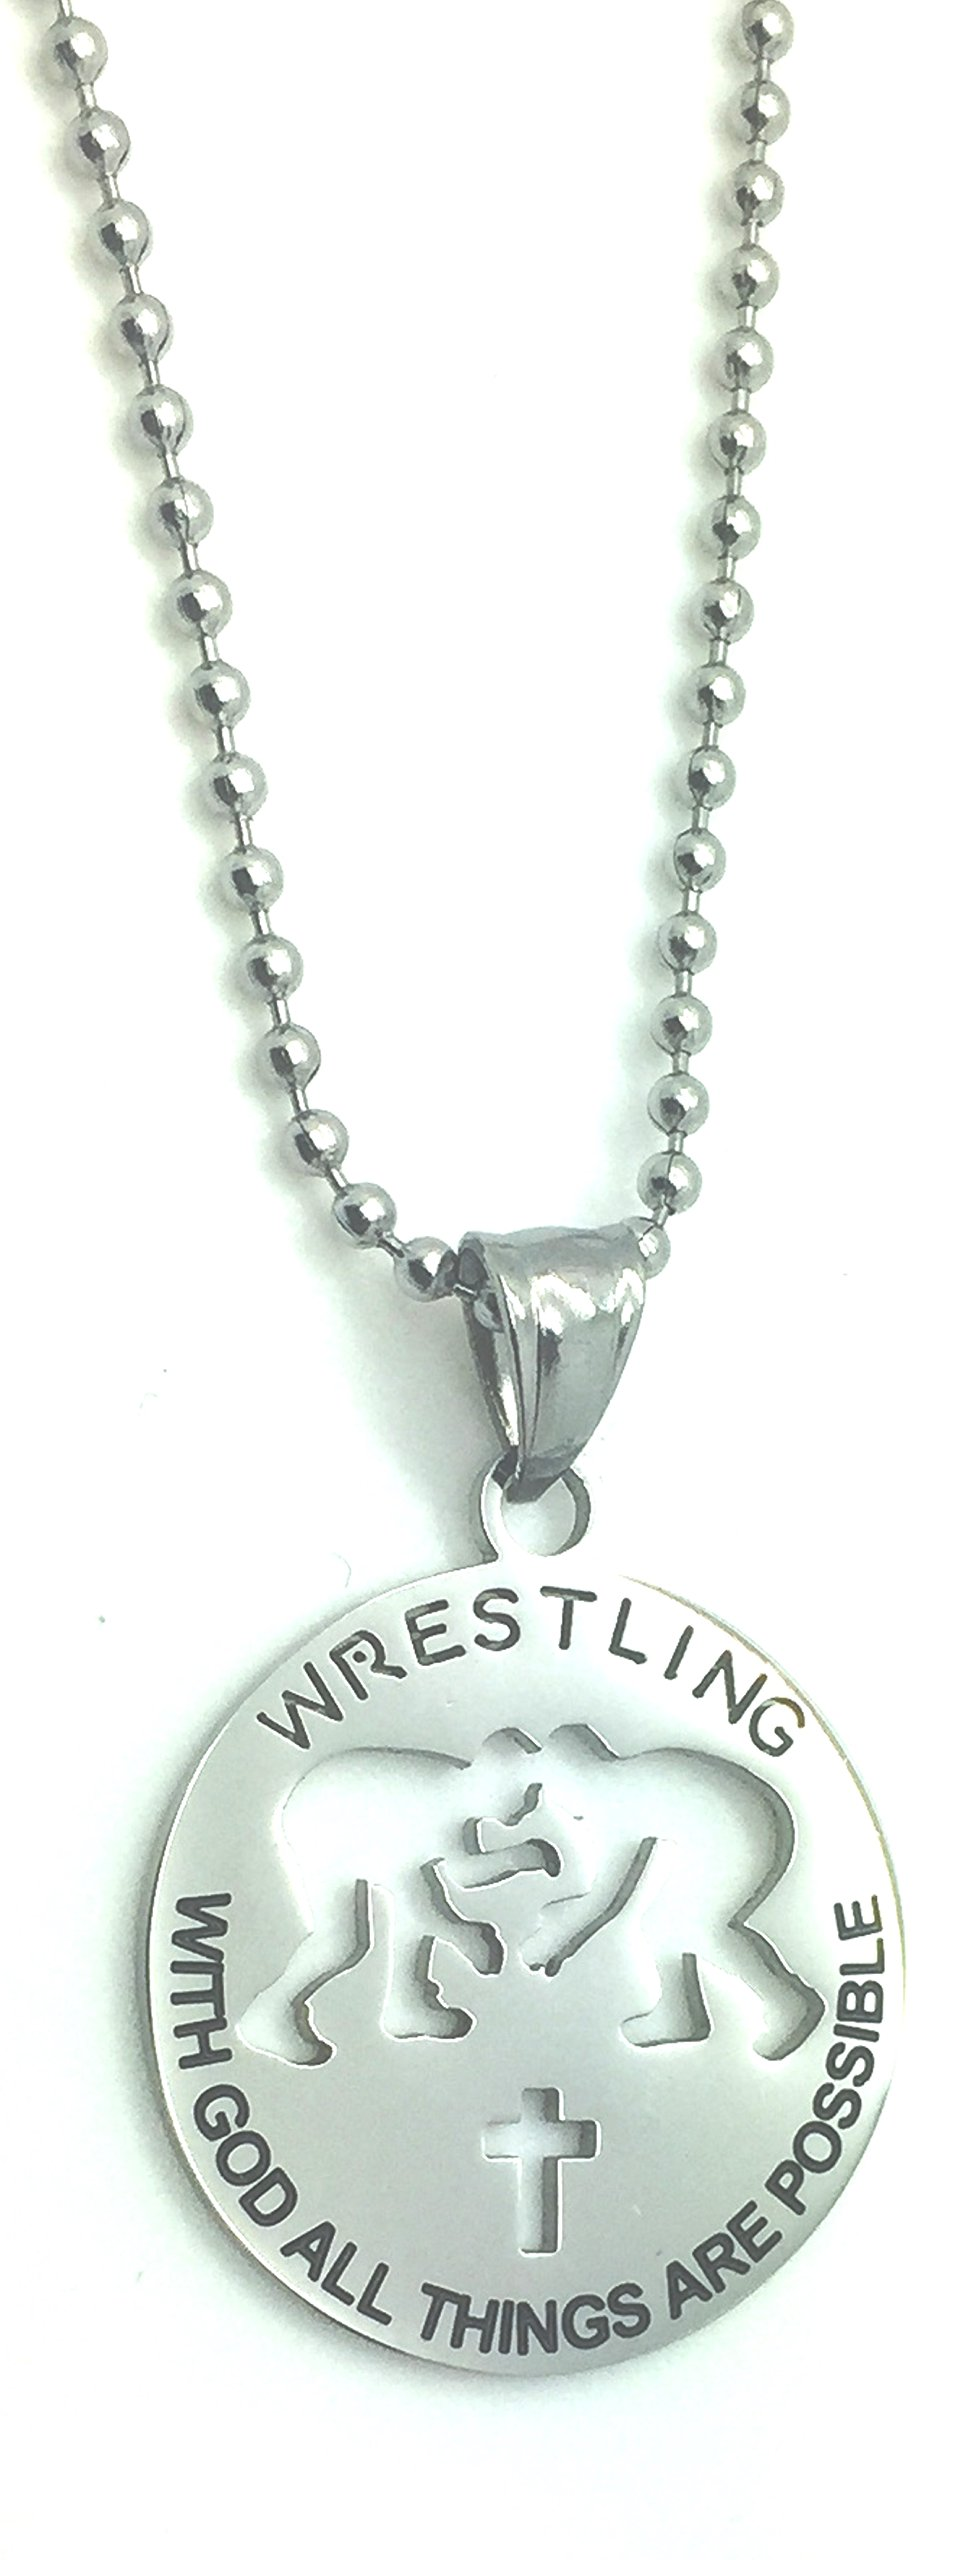 Ben Junot Christian Stainless Steel Sport Medal Necklace - Chain Included with God all things are possible Christian Sport Medal (Wrestling)